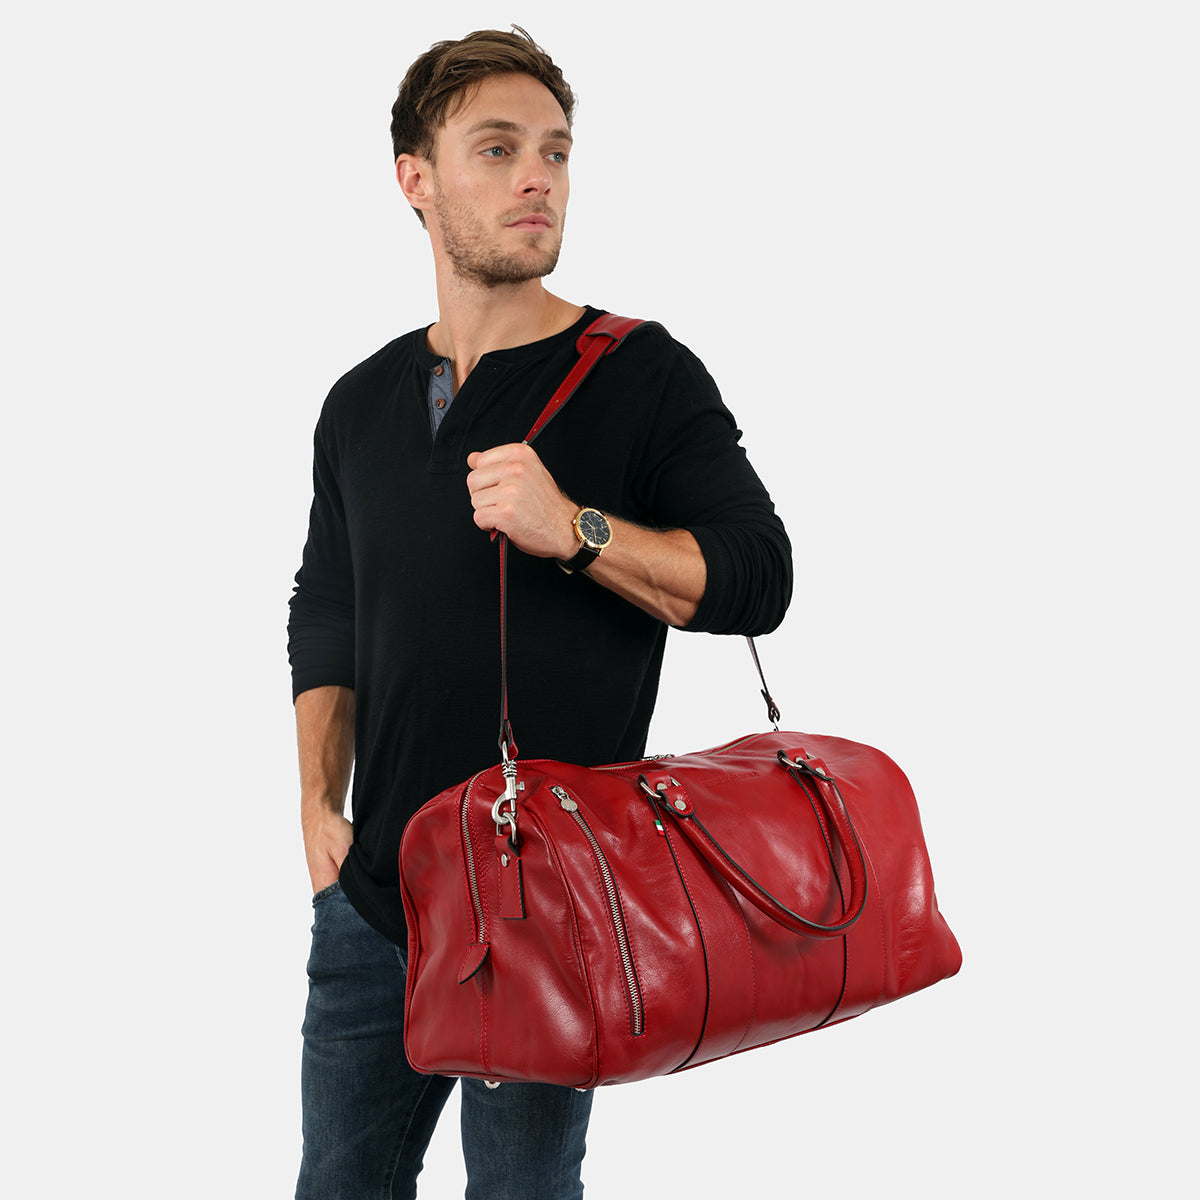 Nardi Red - Leather Duffle Cabin Bag with outer pocket